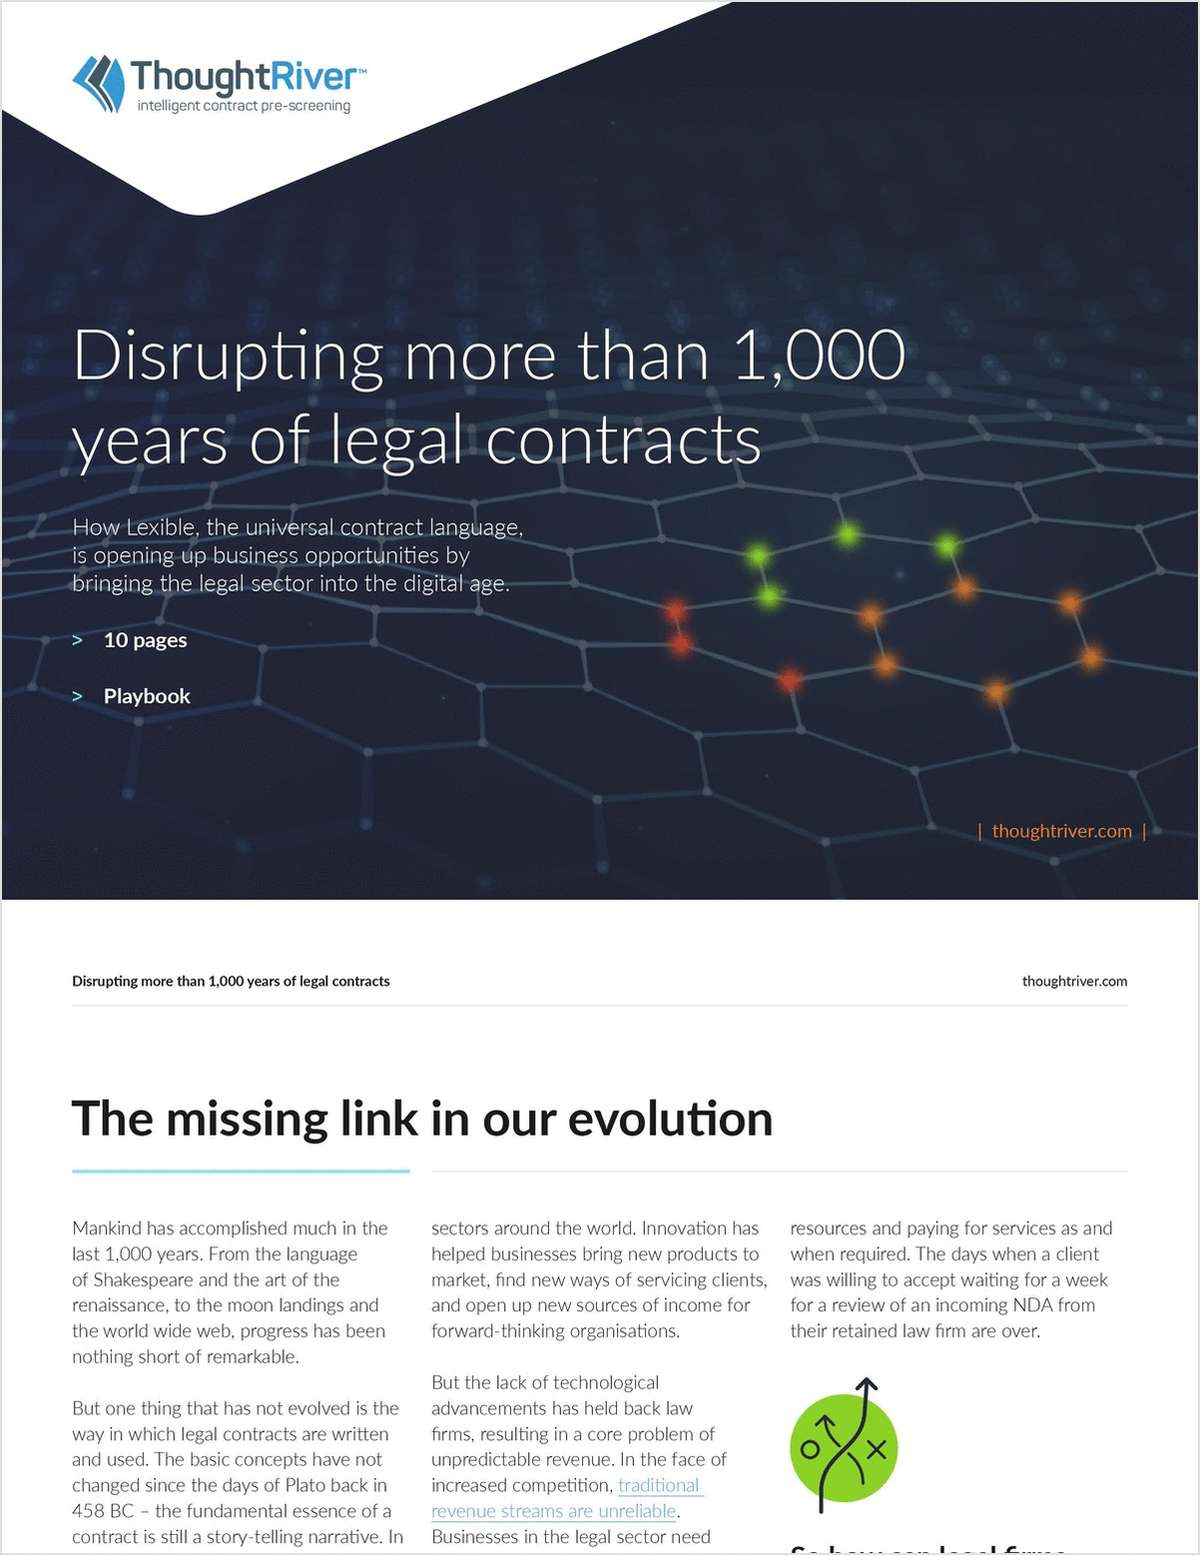 How a New Contract Language is Disrupting 1000+ Years of Legal Agreements